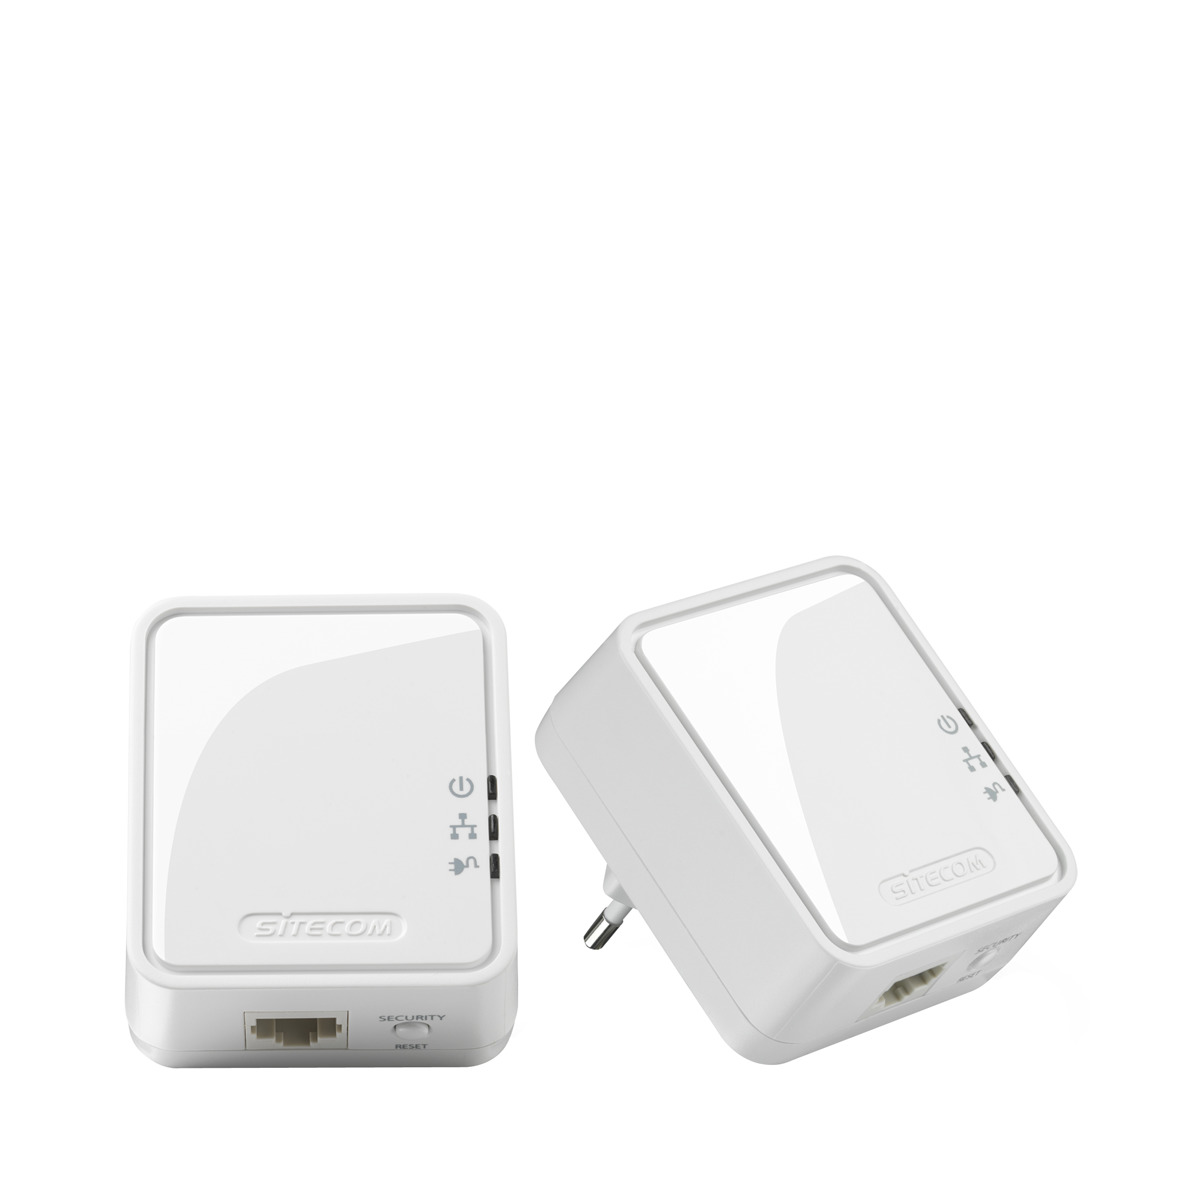 Kit adaptadores PLC Sitecom Mini Homeplug LN-551 500 Mbps